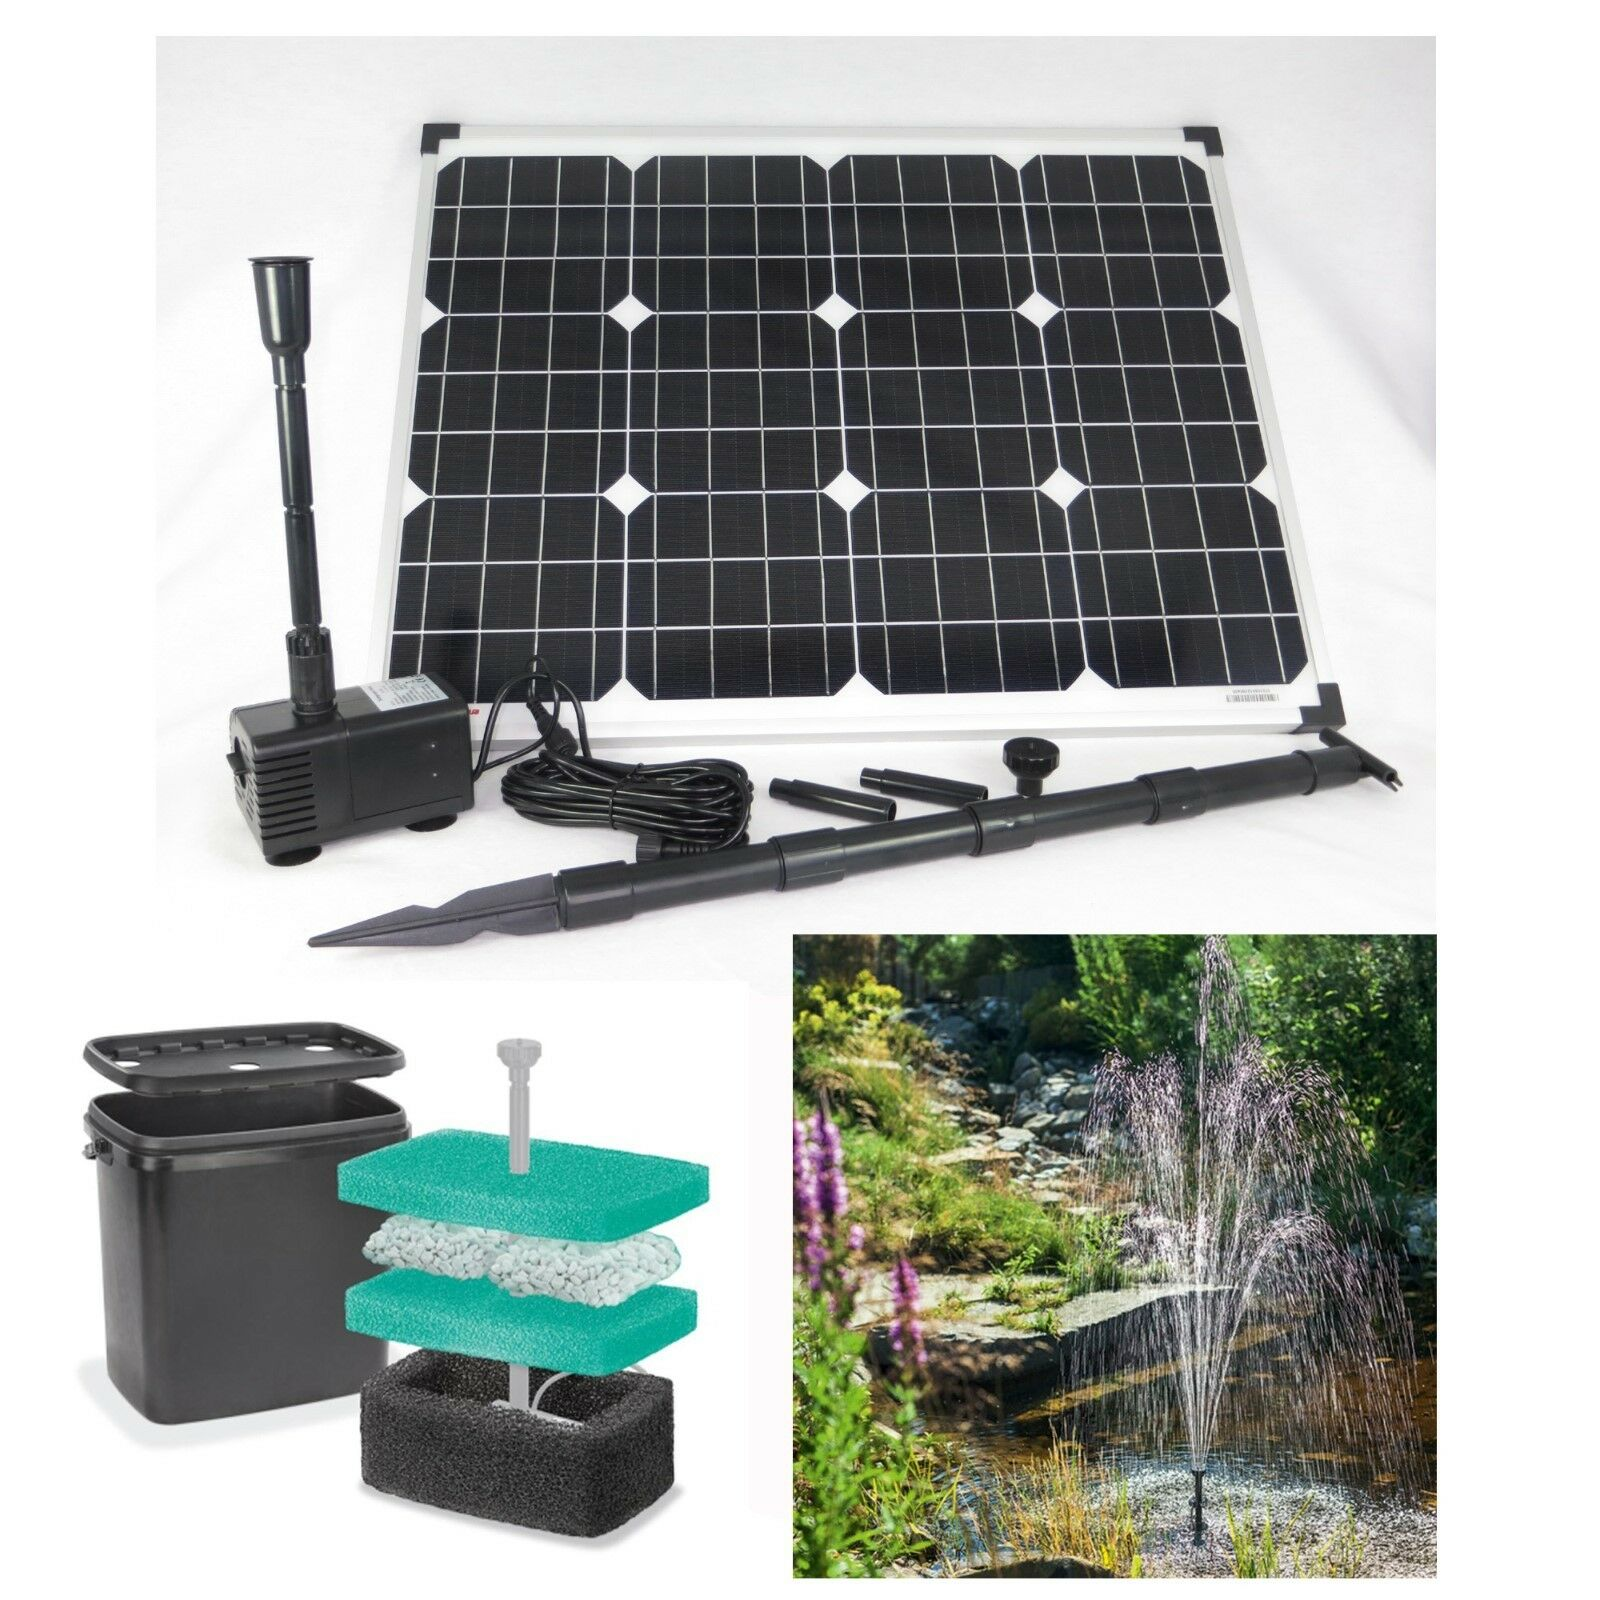 50 w solar teichpumpe filter tauchpumpe garten bachlauf pumpe solarpumpe teich eur 165 00. Black Bedroom Furniture Sets. Home Design Ideas